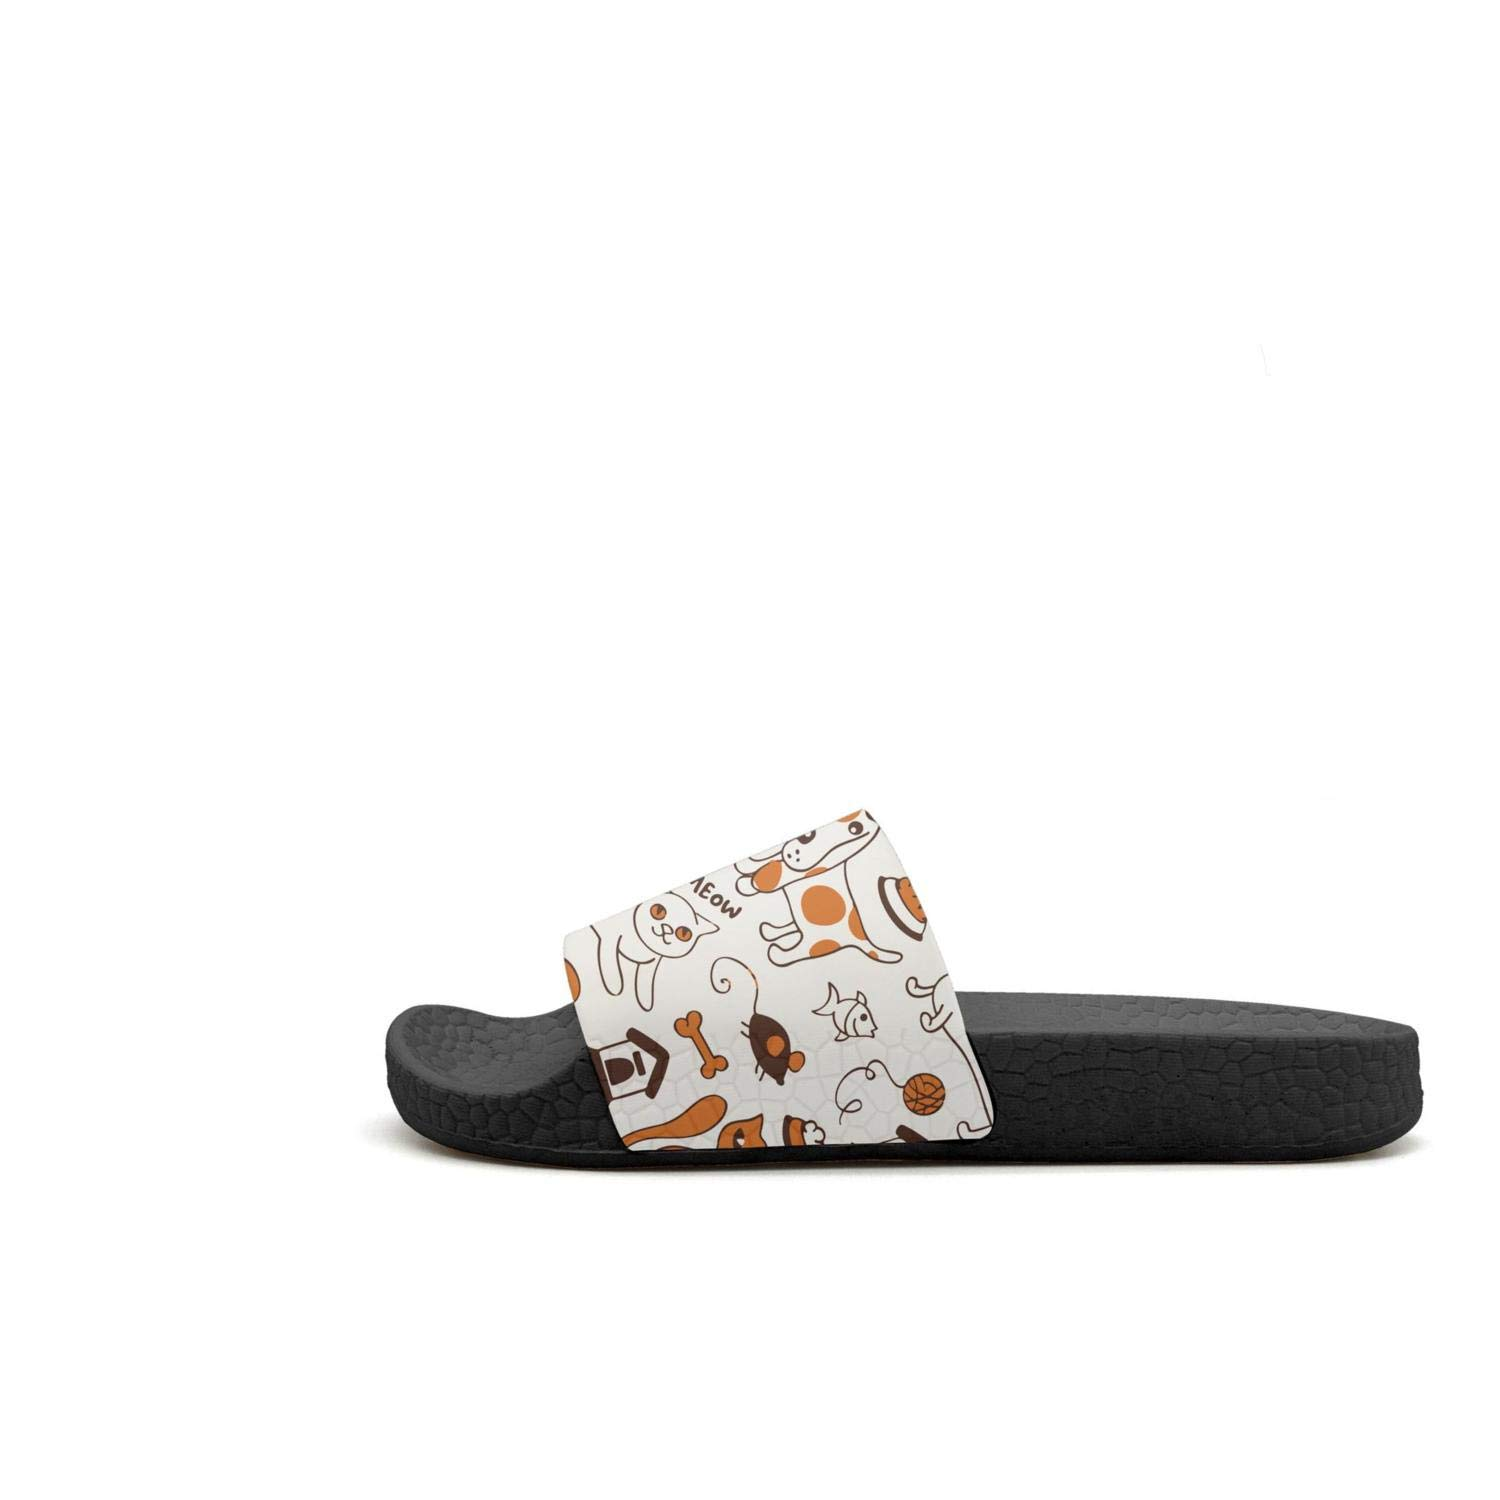 Men Cats and dogs meow woof Slippers for Mens Customize Soft Foams Shoes